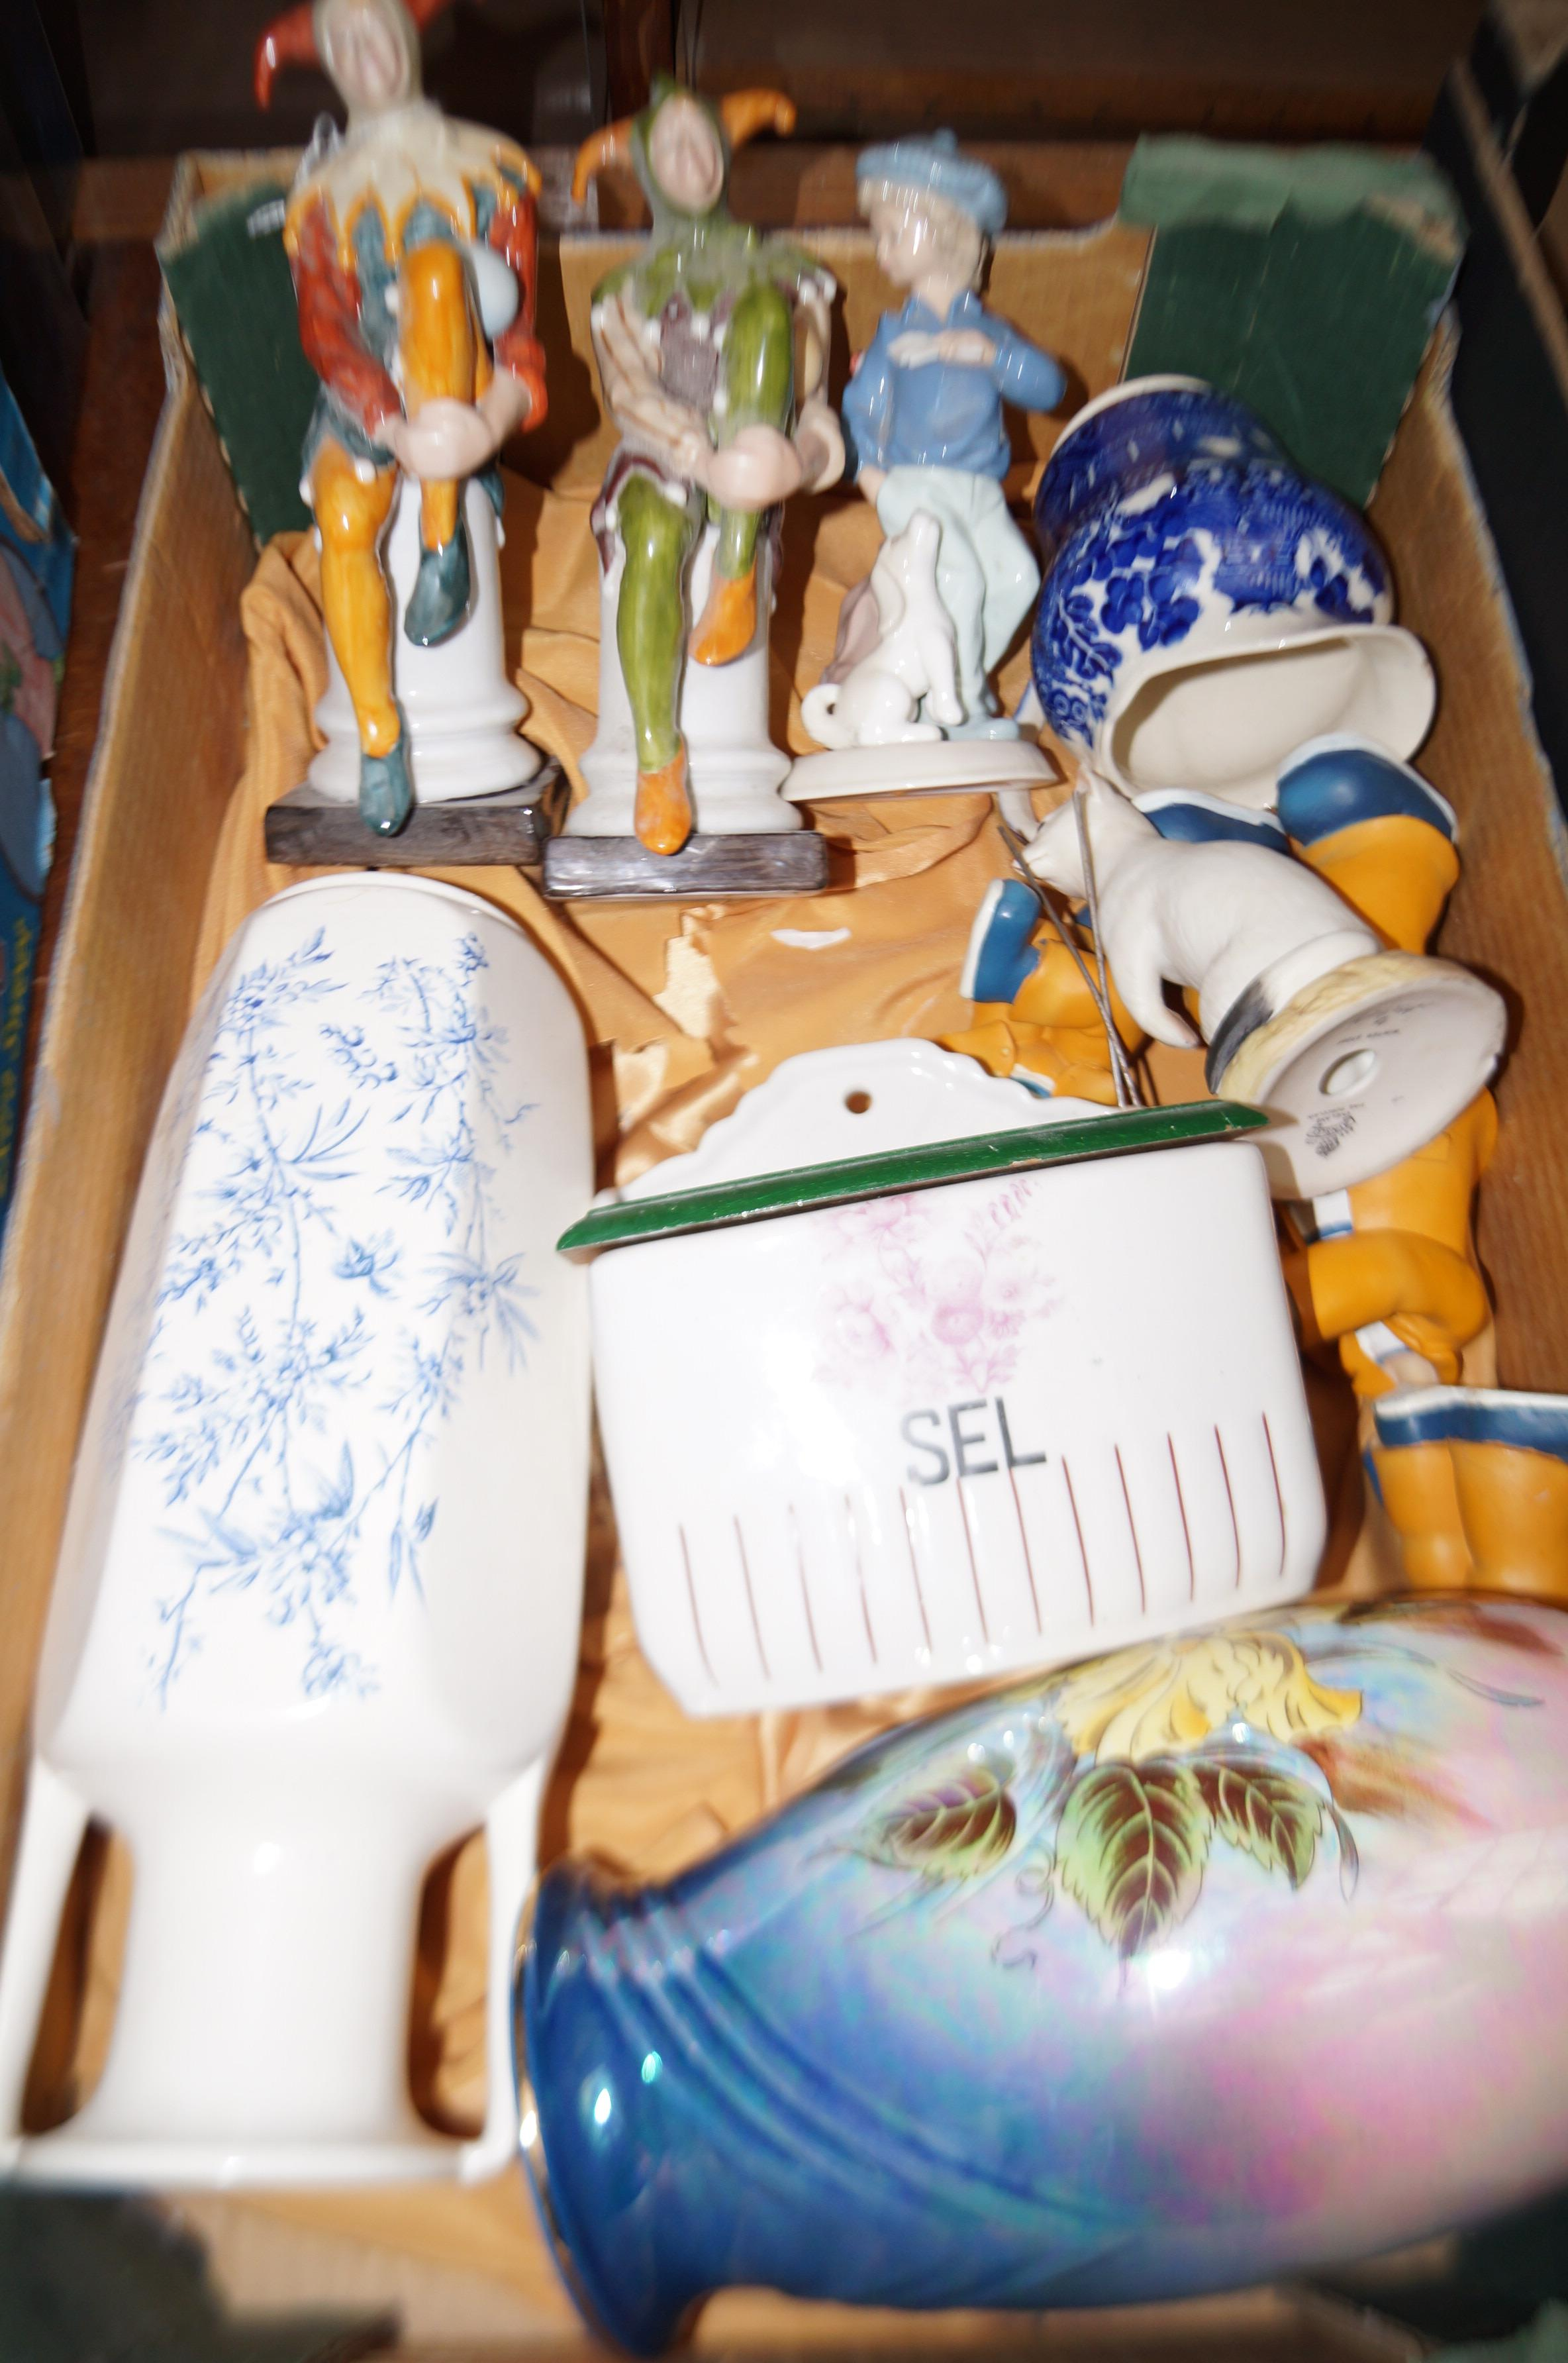 Lot 2 - Ceramics to include an early french salt box